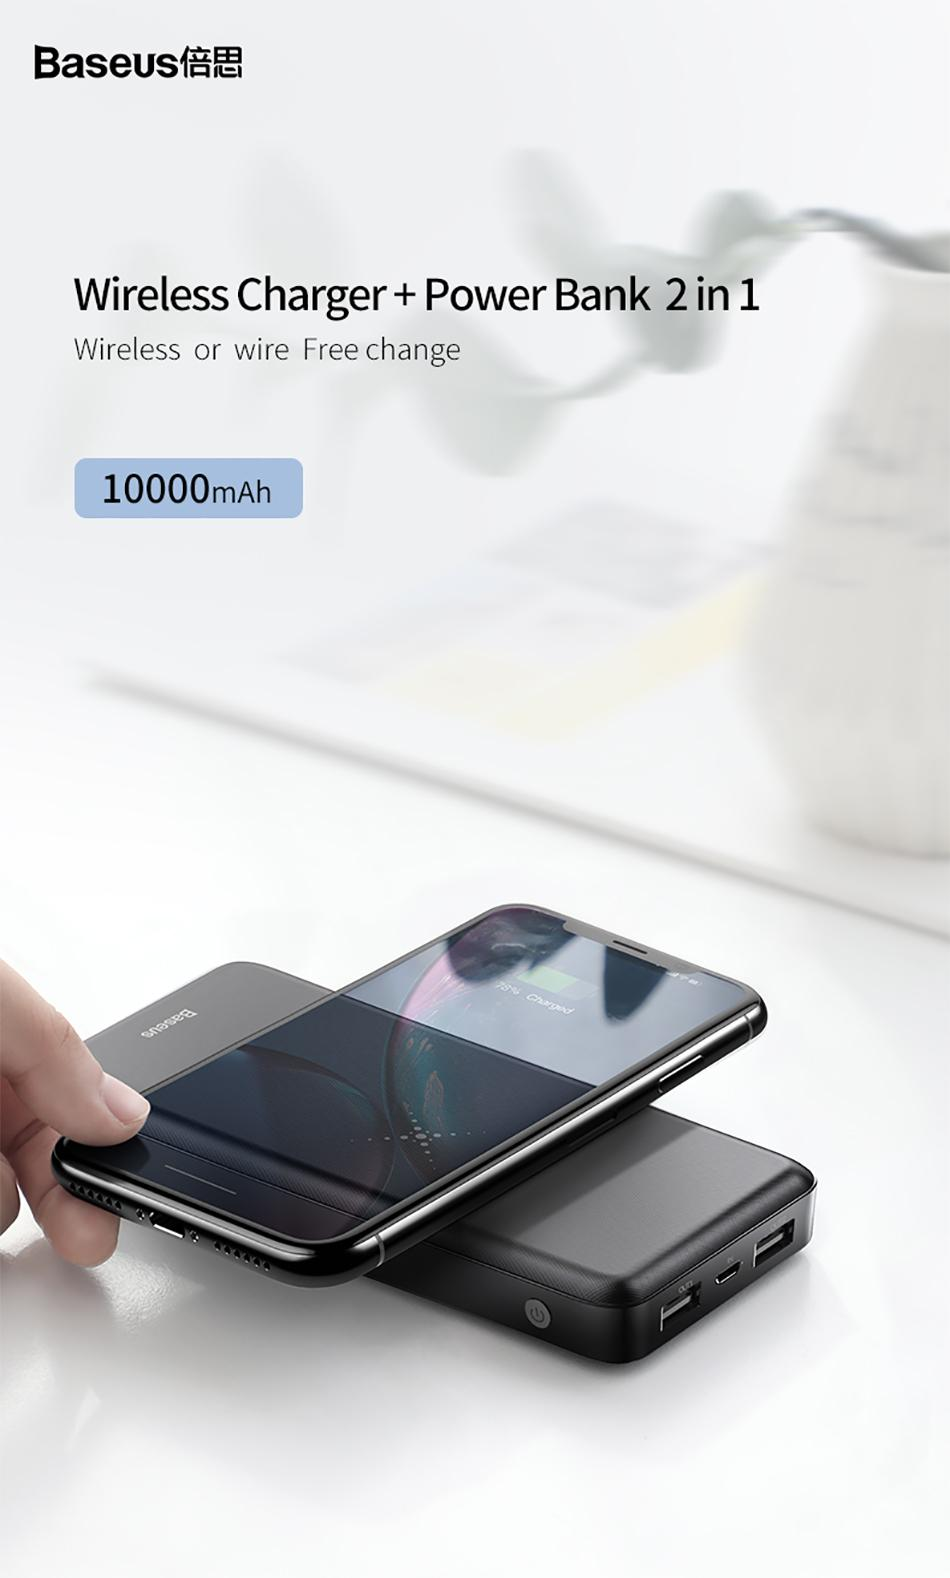 Baseus M36 Wireless Charger Powerbank 10000mAh Black_2.jpeg